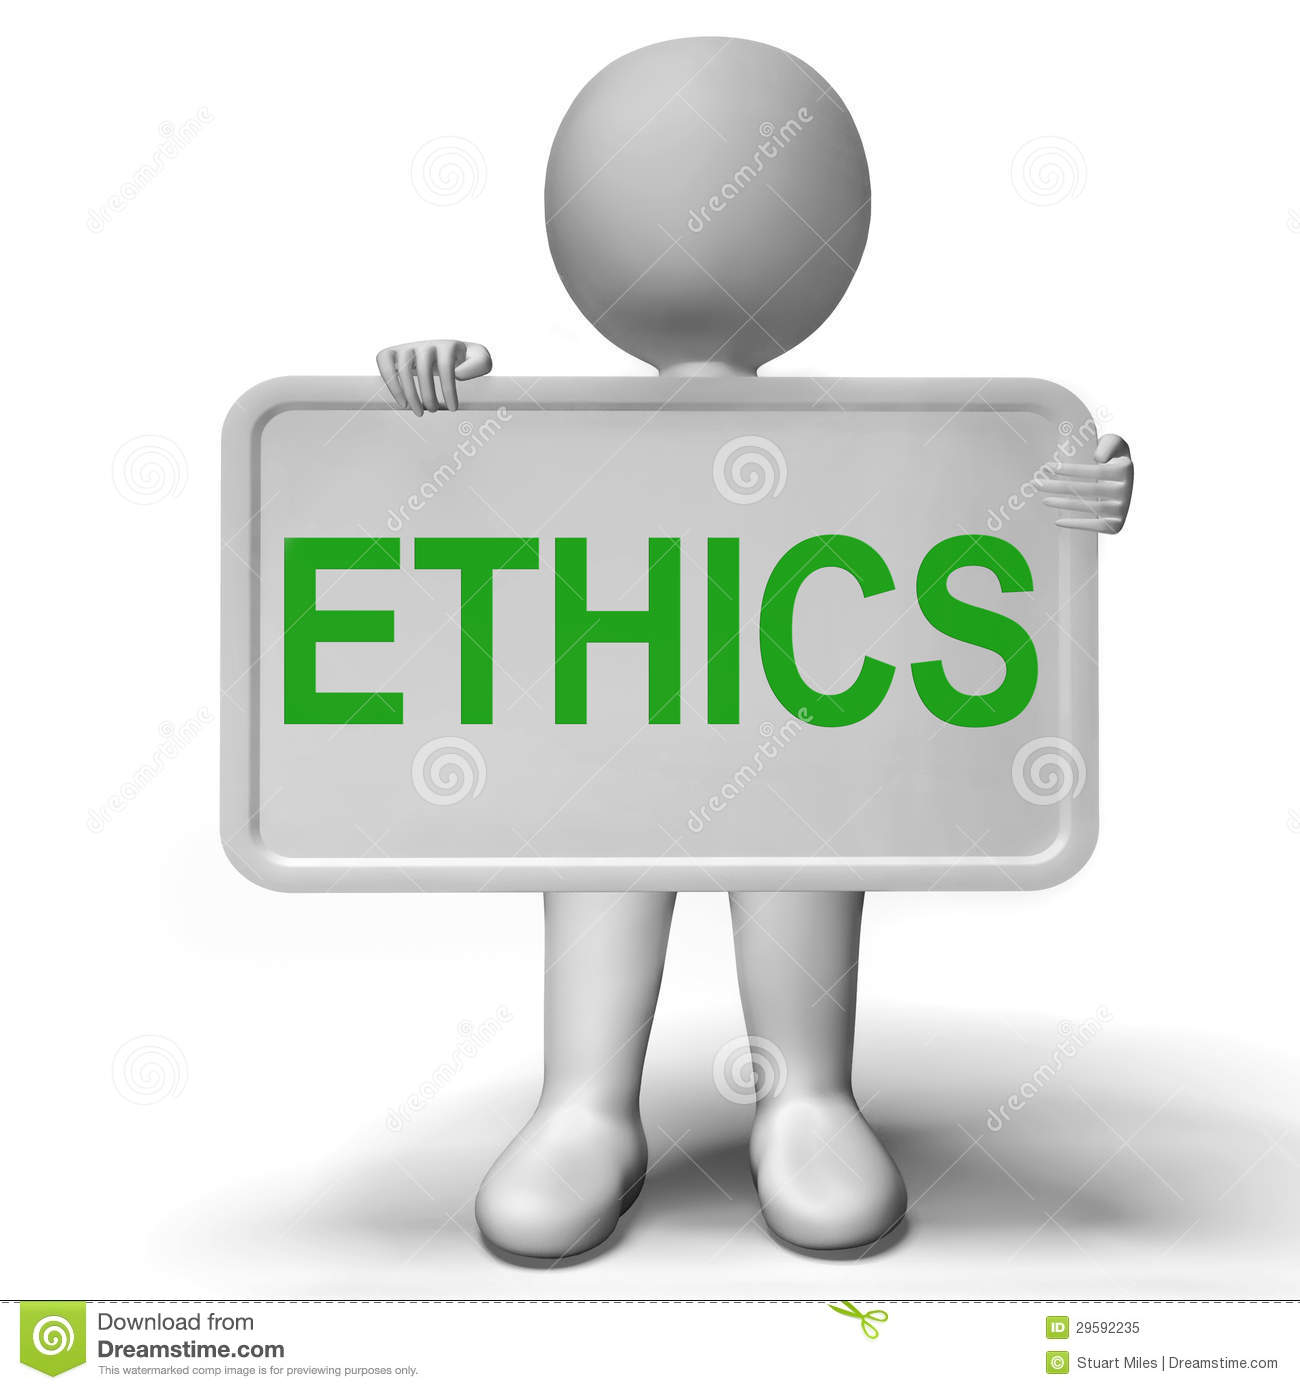 Ethics Sign Showing Values Ideology And Principles Royalty Free Stock